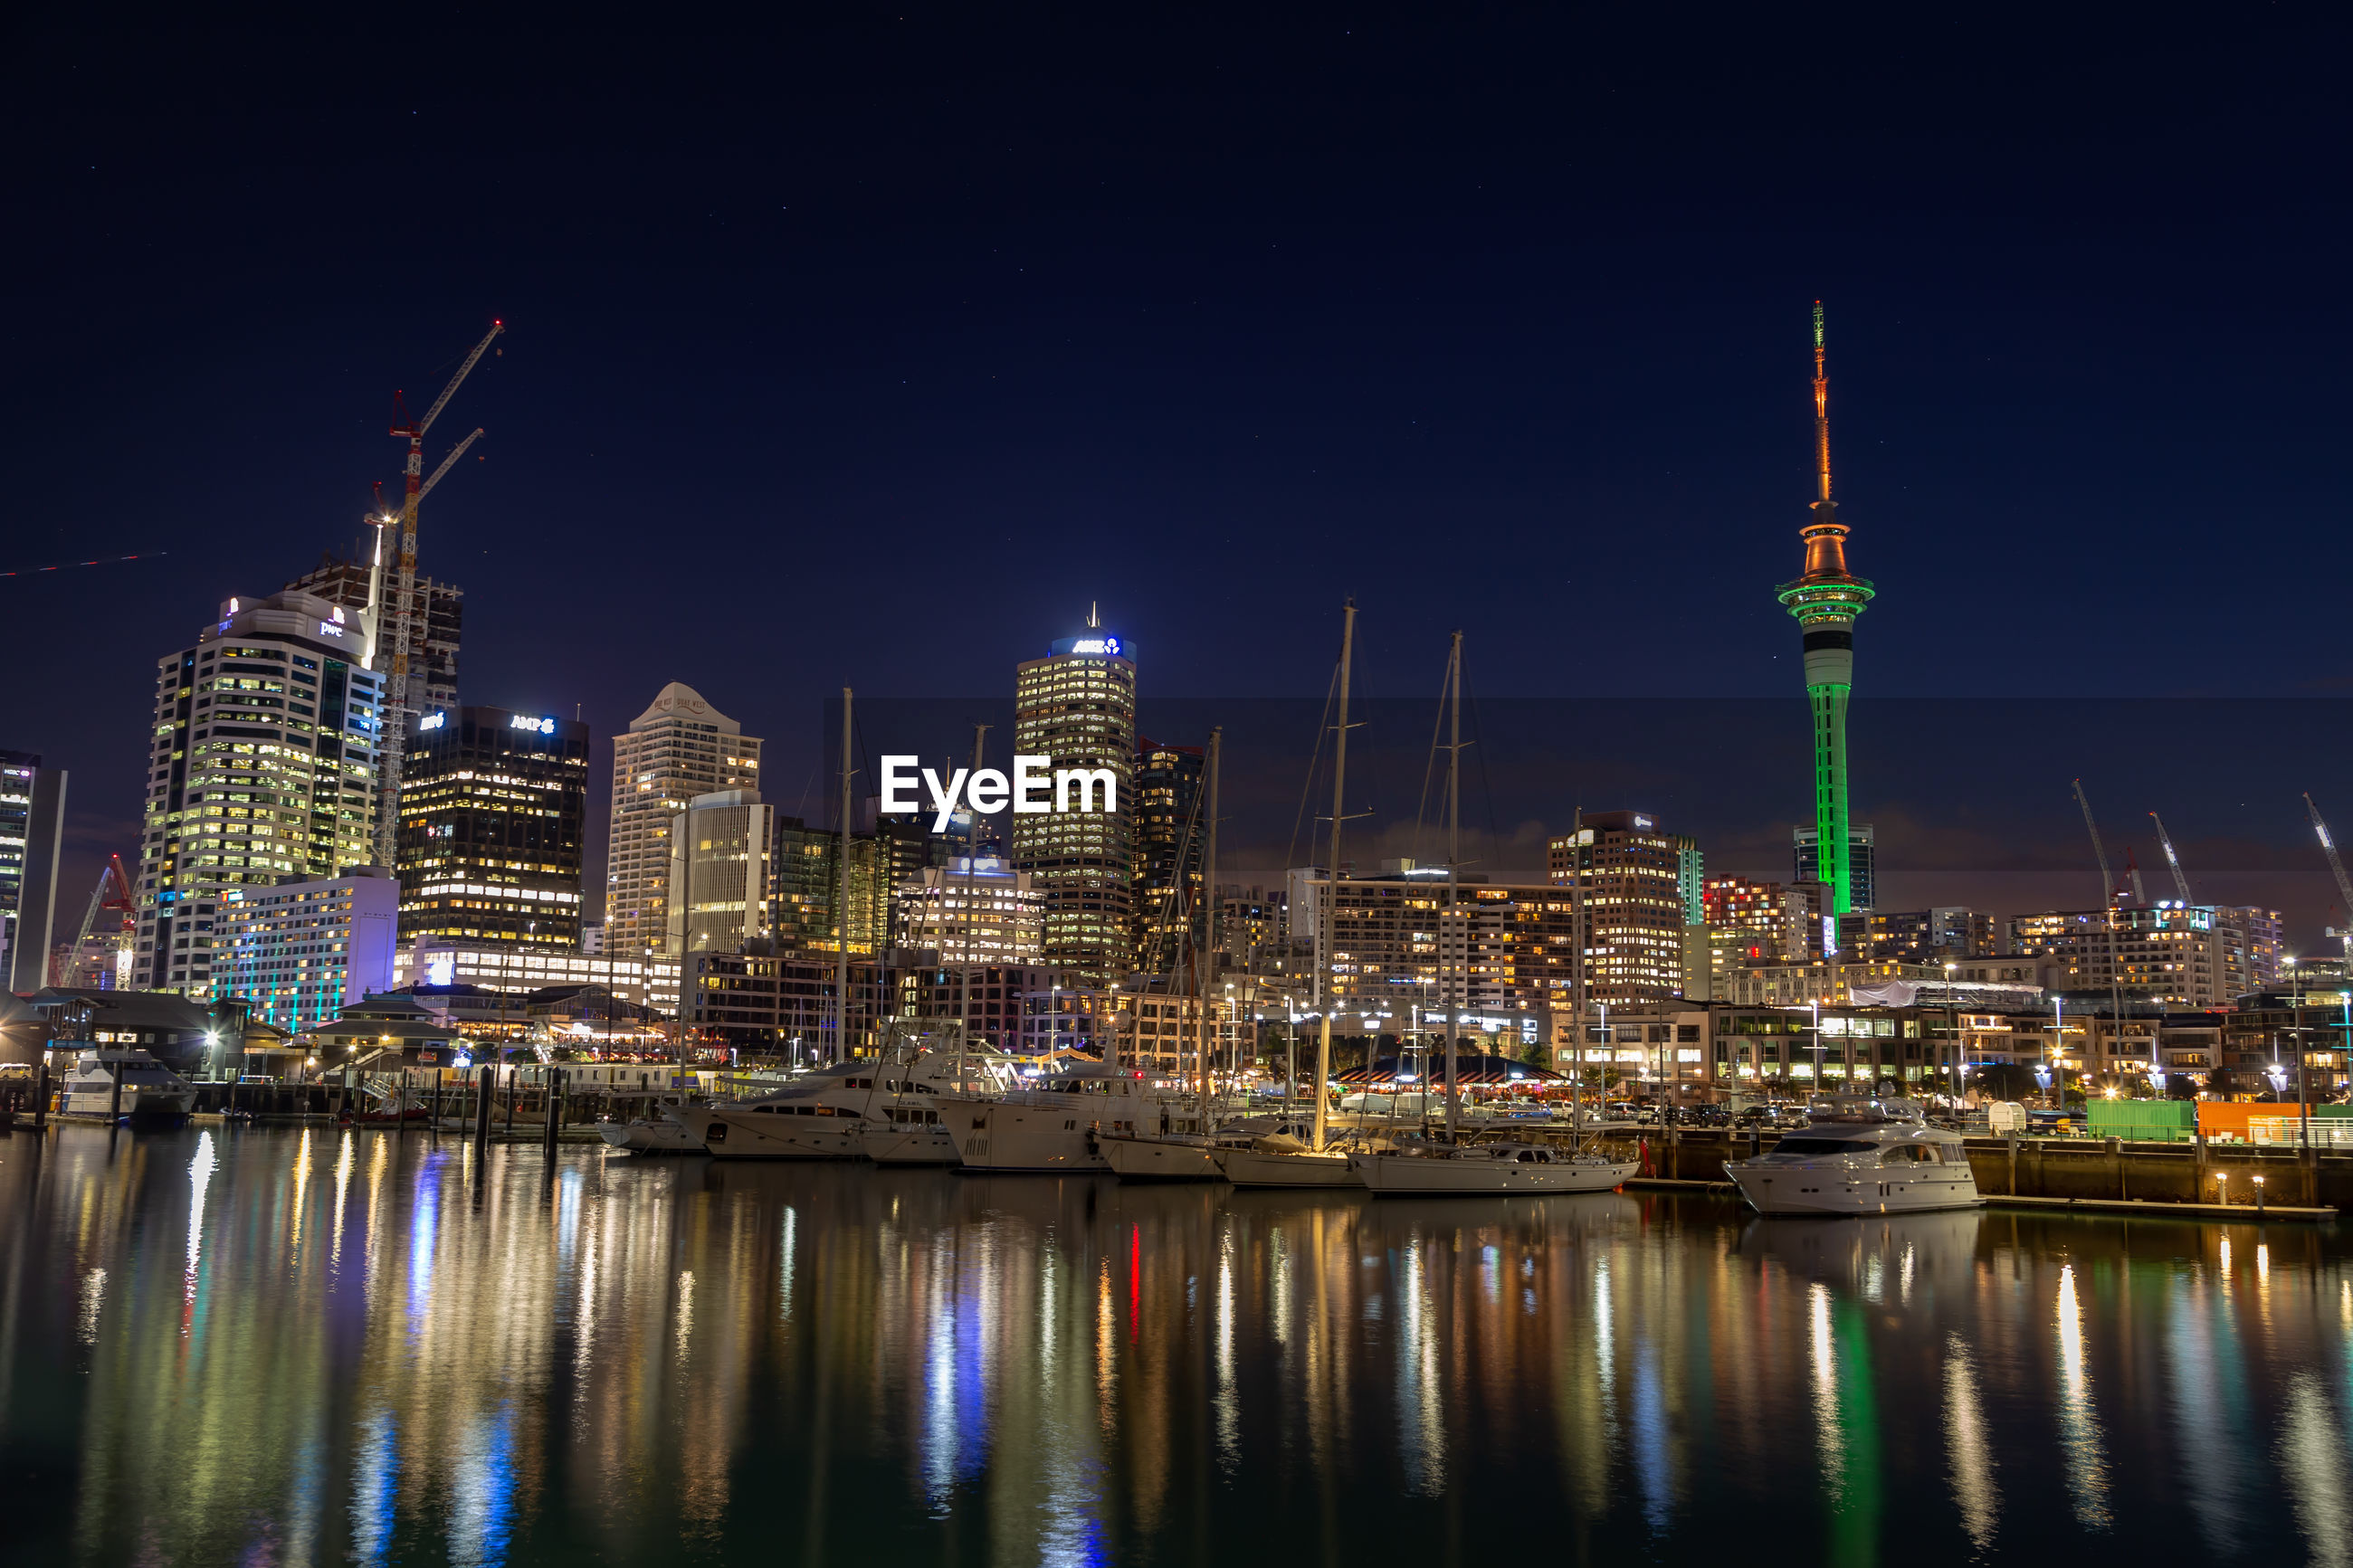 Illuminated city buildings by river at night